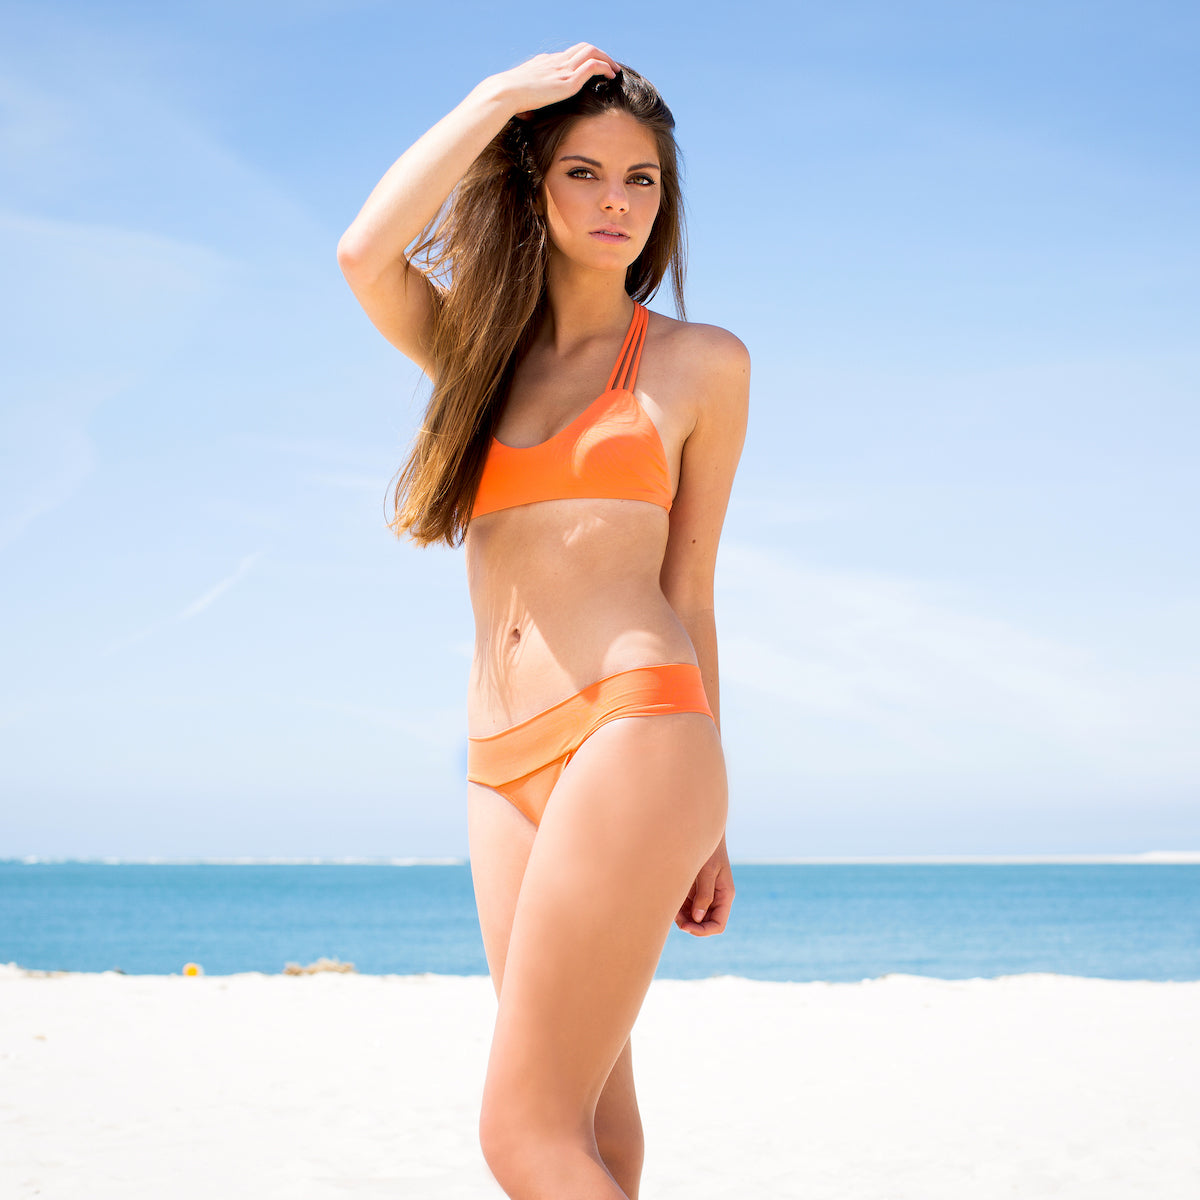 Sunshine Bikini Top in Nectarine by Tuhkana Swimwear